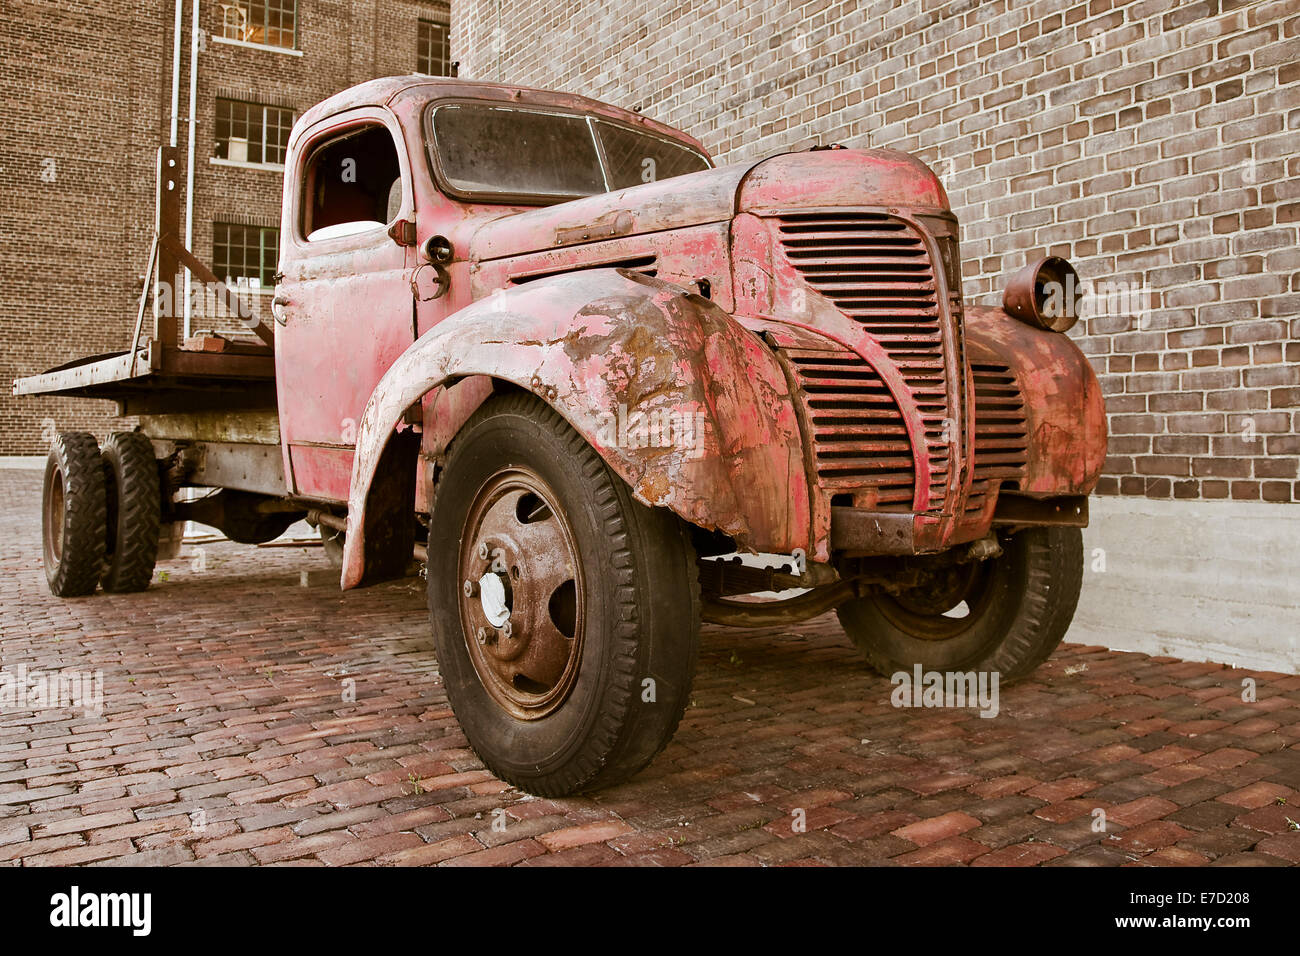 Rusty Classic Truck Stock Photos & Rusty Classic Truck Stock Images ...